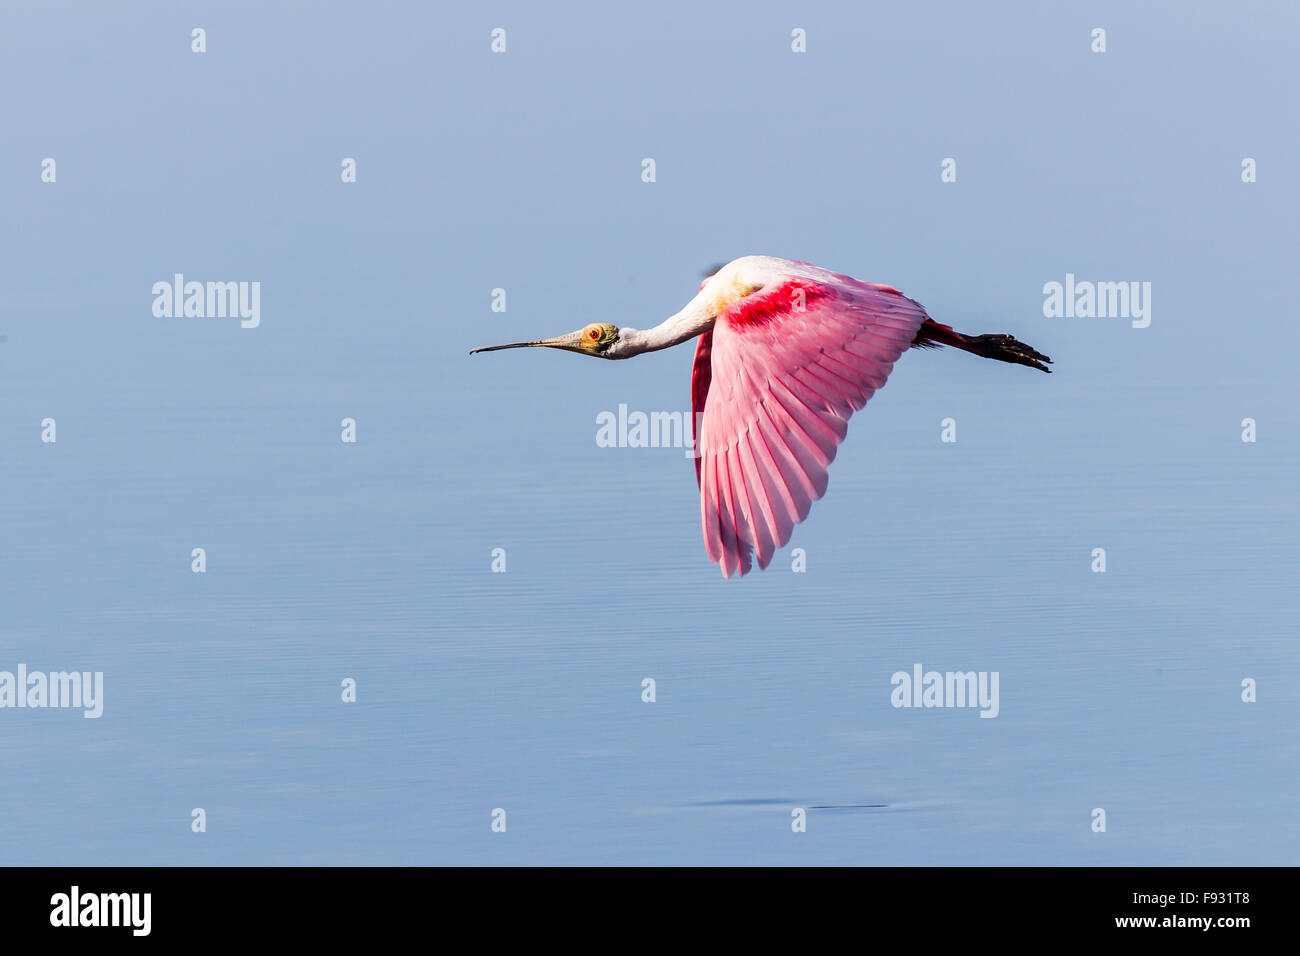 Roseate Spoonbill (Ajaia ajaja), Ding Darling National Wildlife Refuge, Sanibel Island, Florida, USA - Stock Image